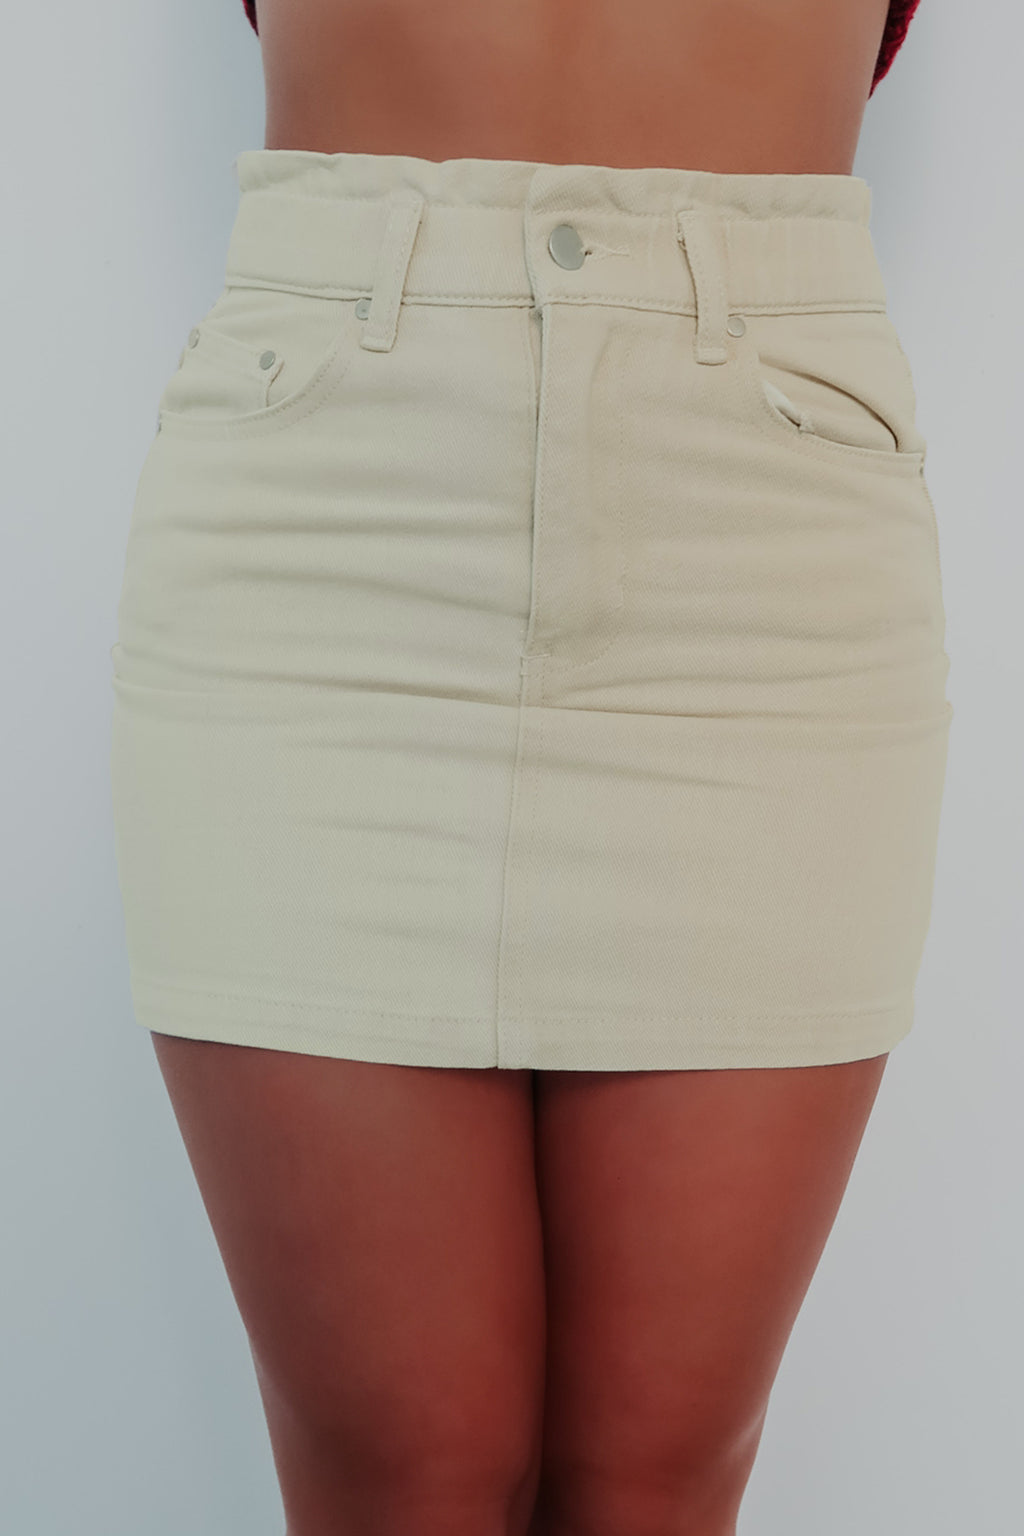 RESTOCK: Chill Of The Night Skirt: Beige